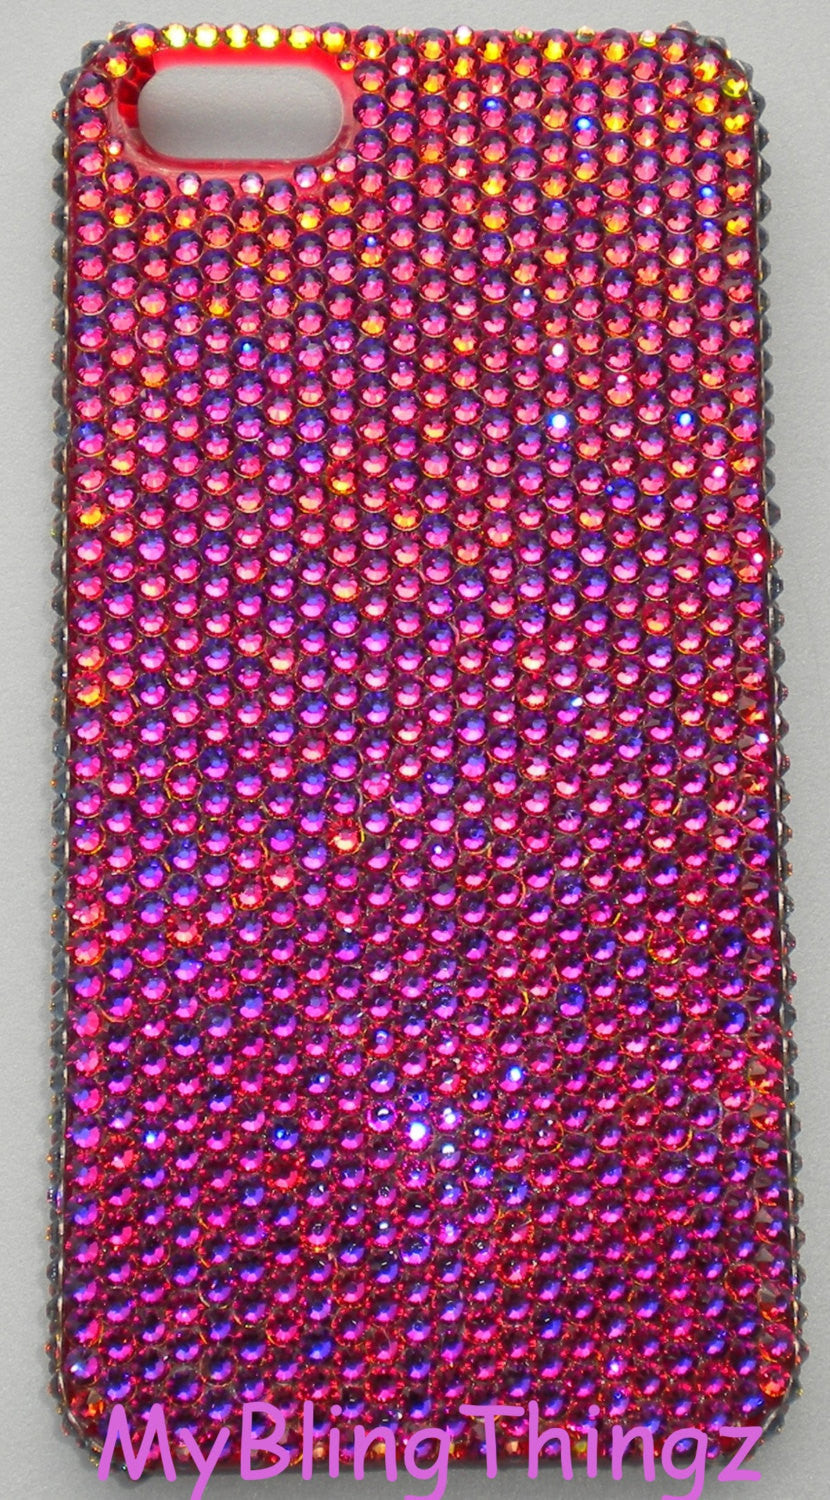 Small 12ss Volcano - Multi Color - Crystal Diamond Rhinestone BLING Back Case for iPhone SE 5 5S handmade with 100% Swarovski Elements